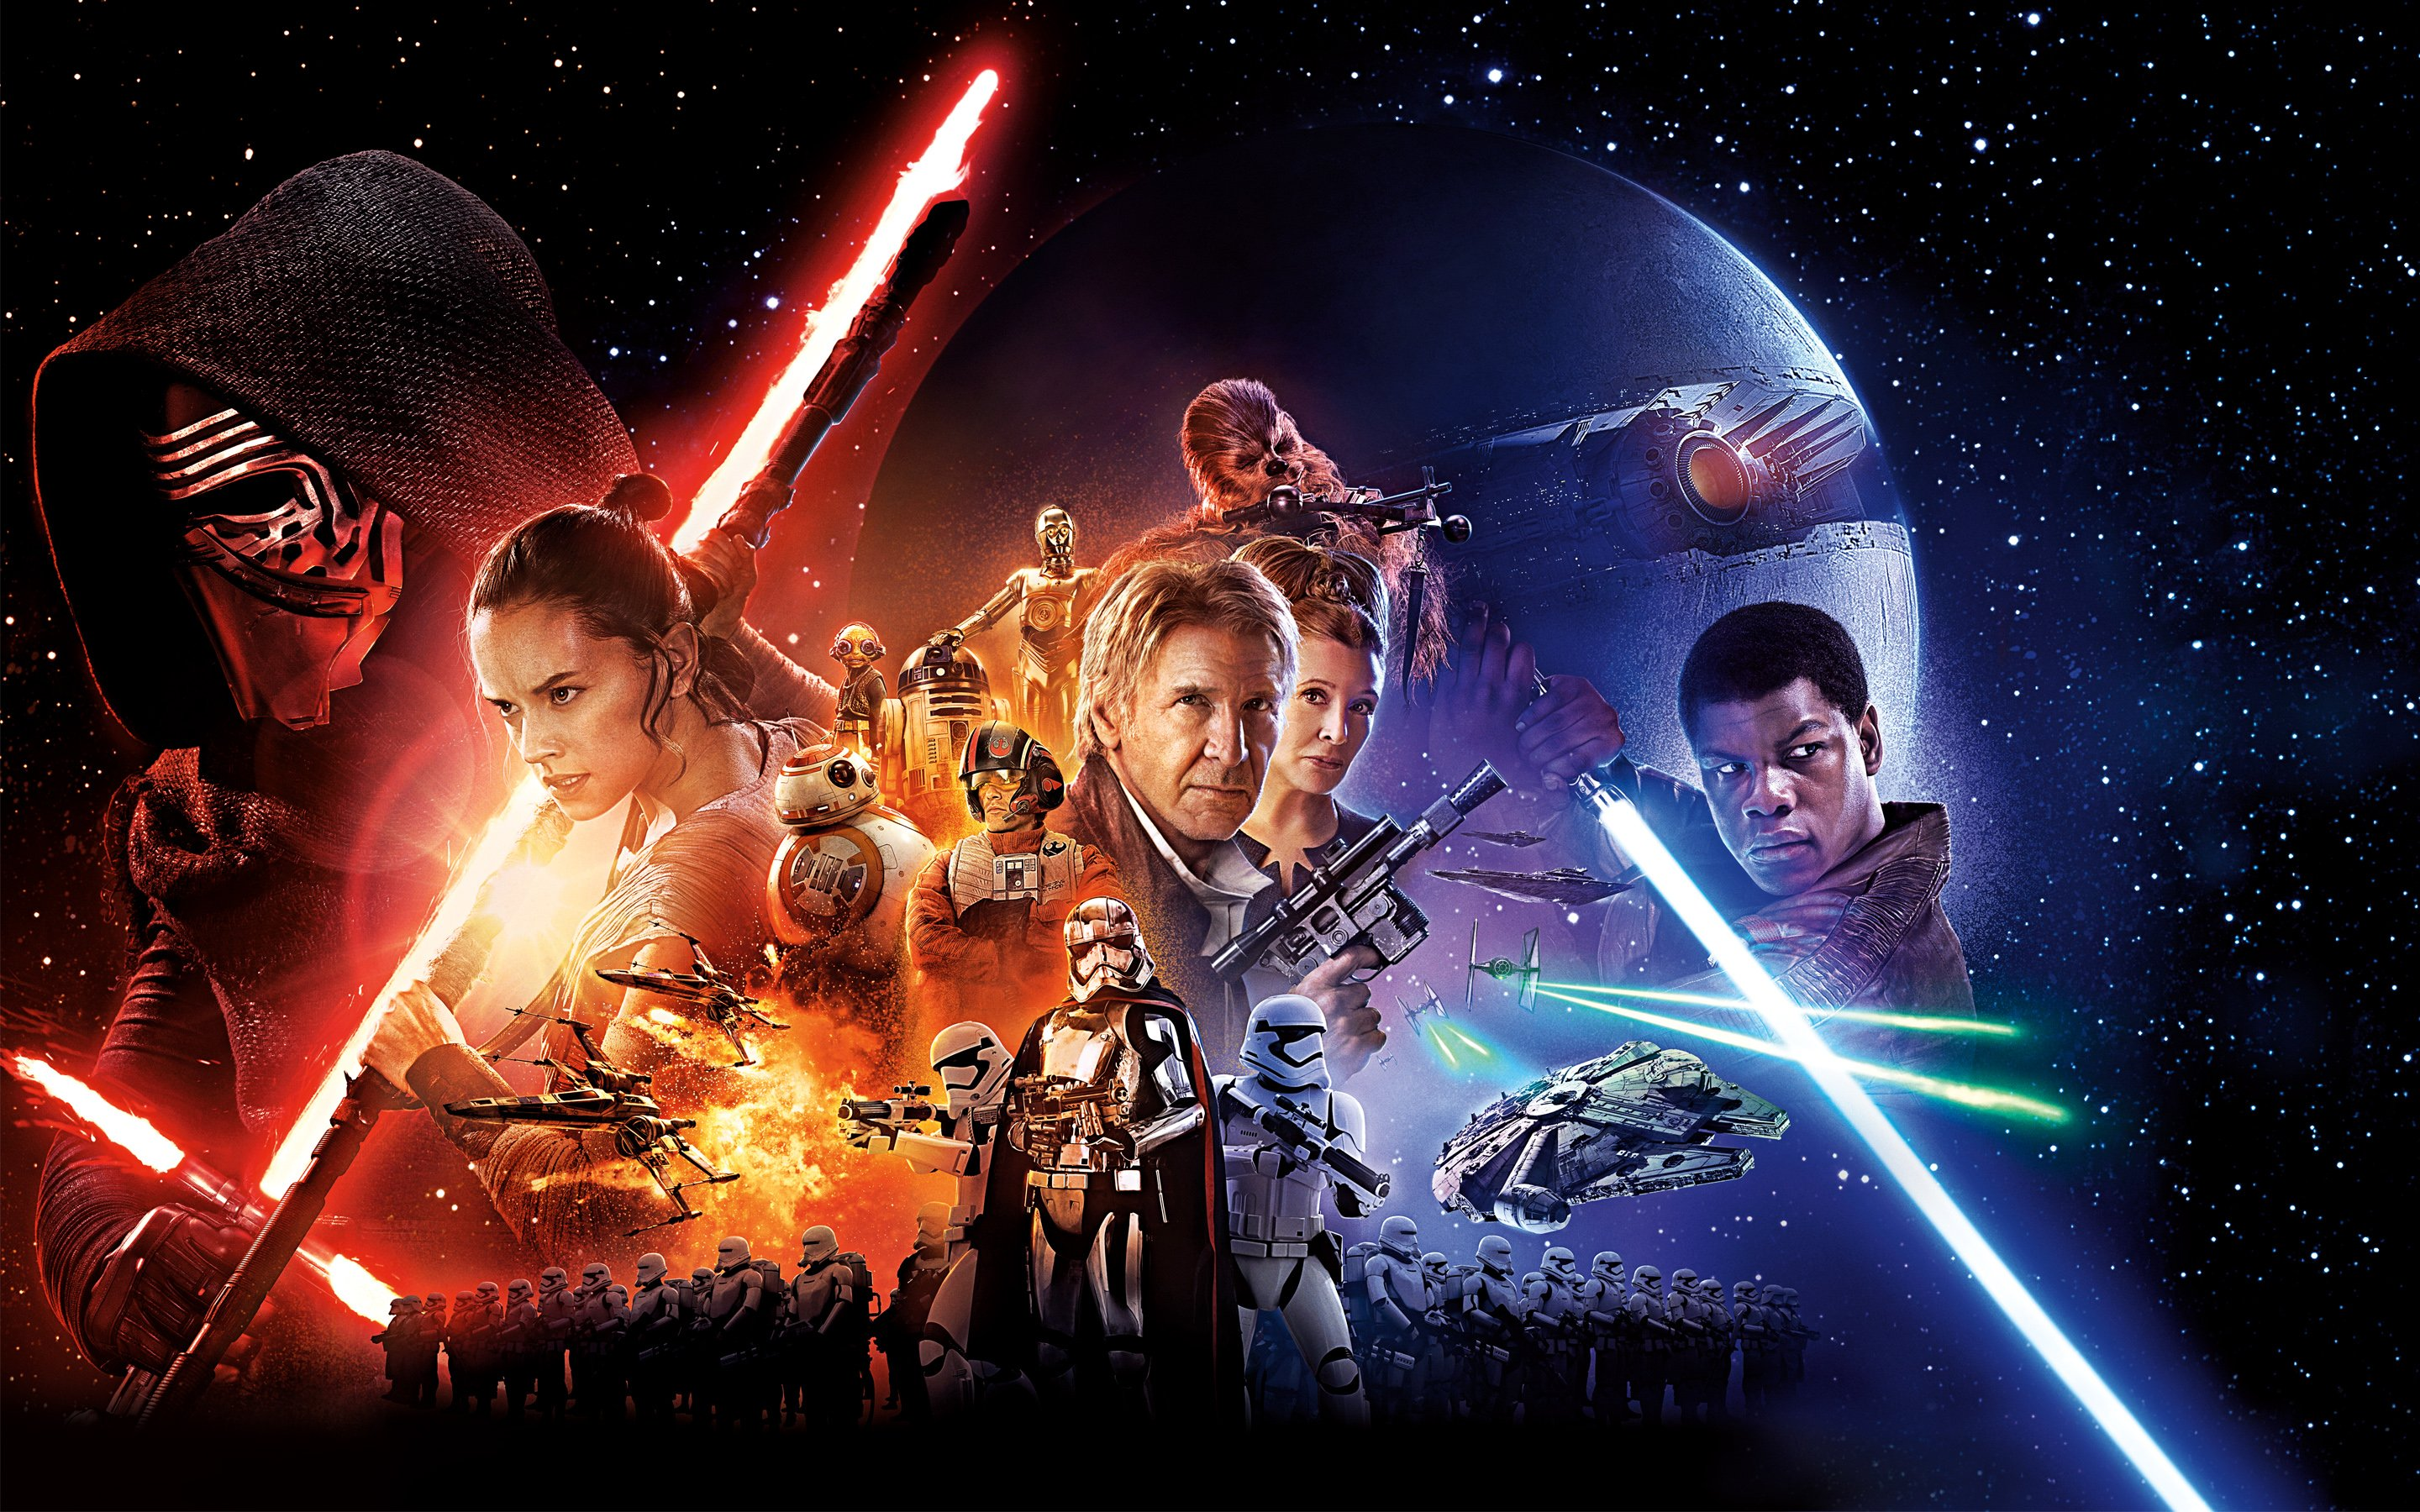 Wars Episode VII The Force Awakens Movie Wallpapers HD Wallpapers 2880x1800